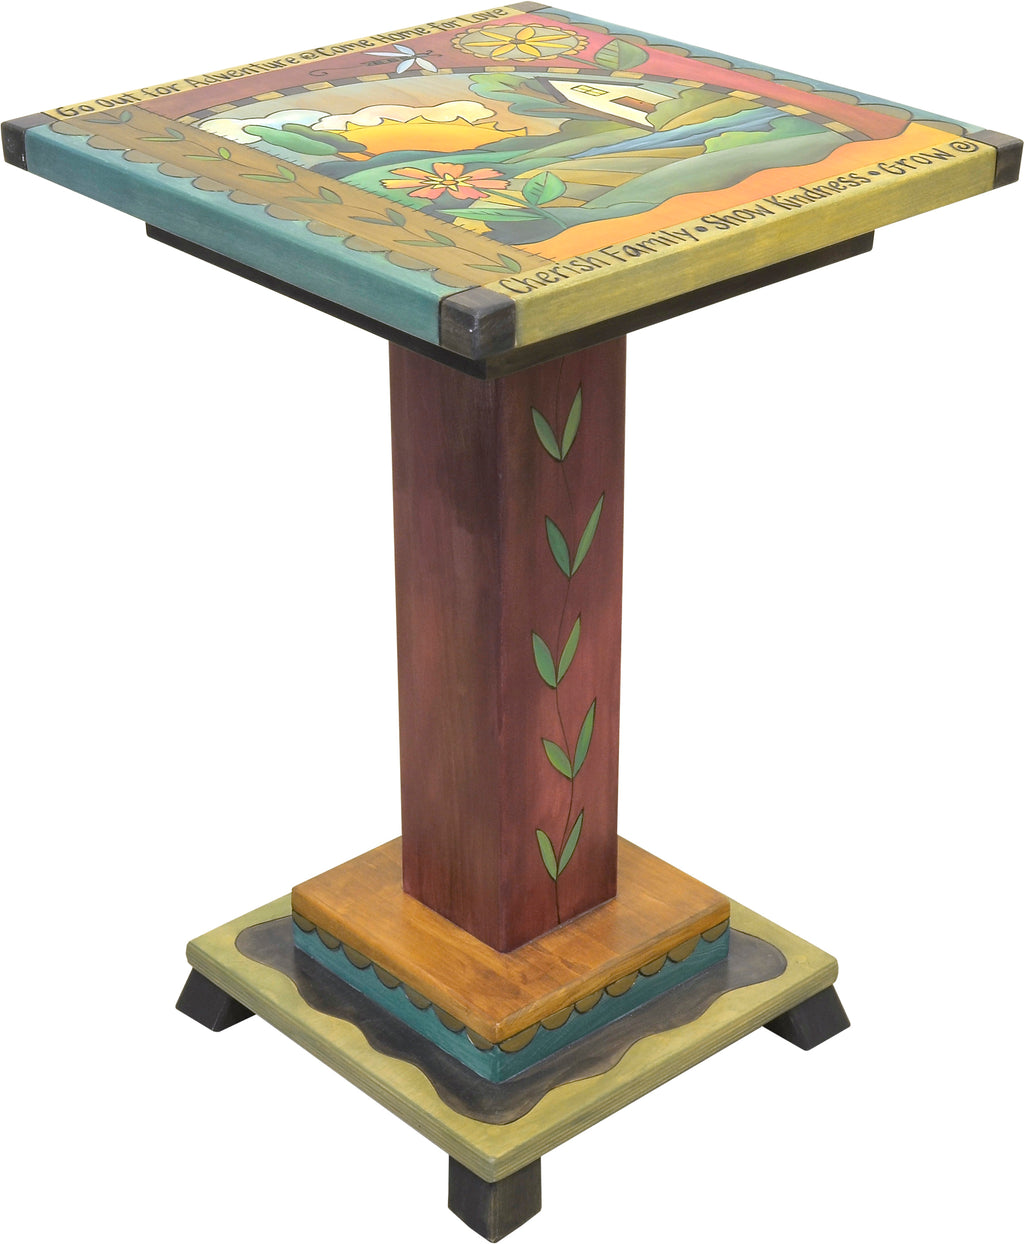 Handsome landscape motif end table with creeping vine on pedestal that also frames the top design